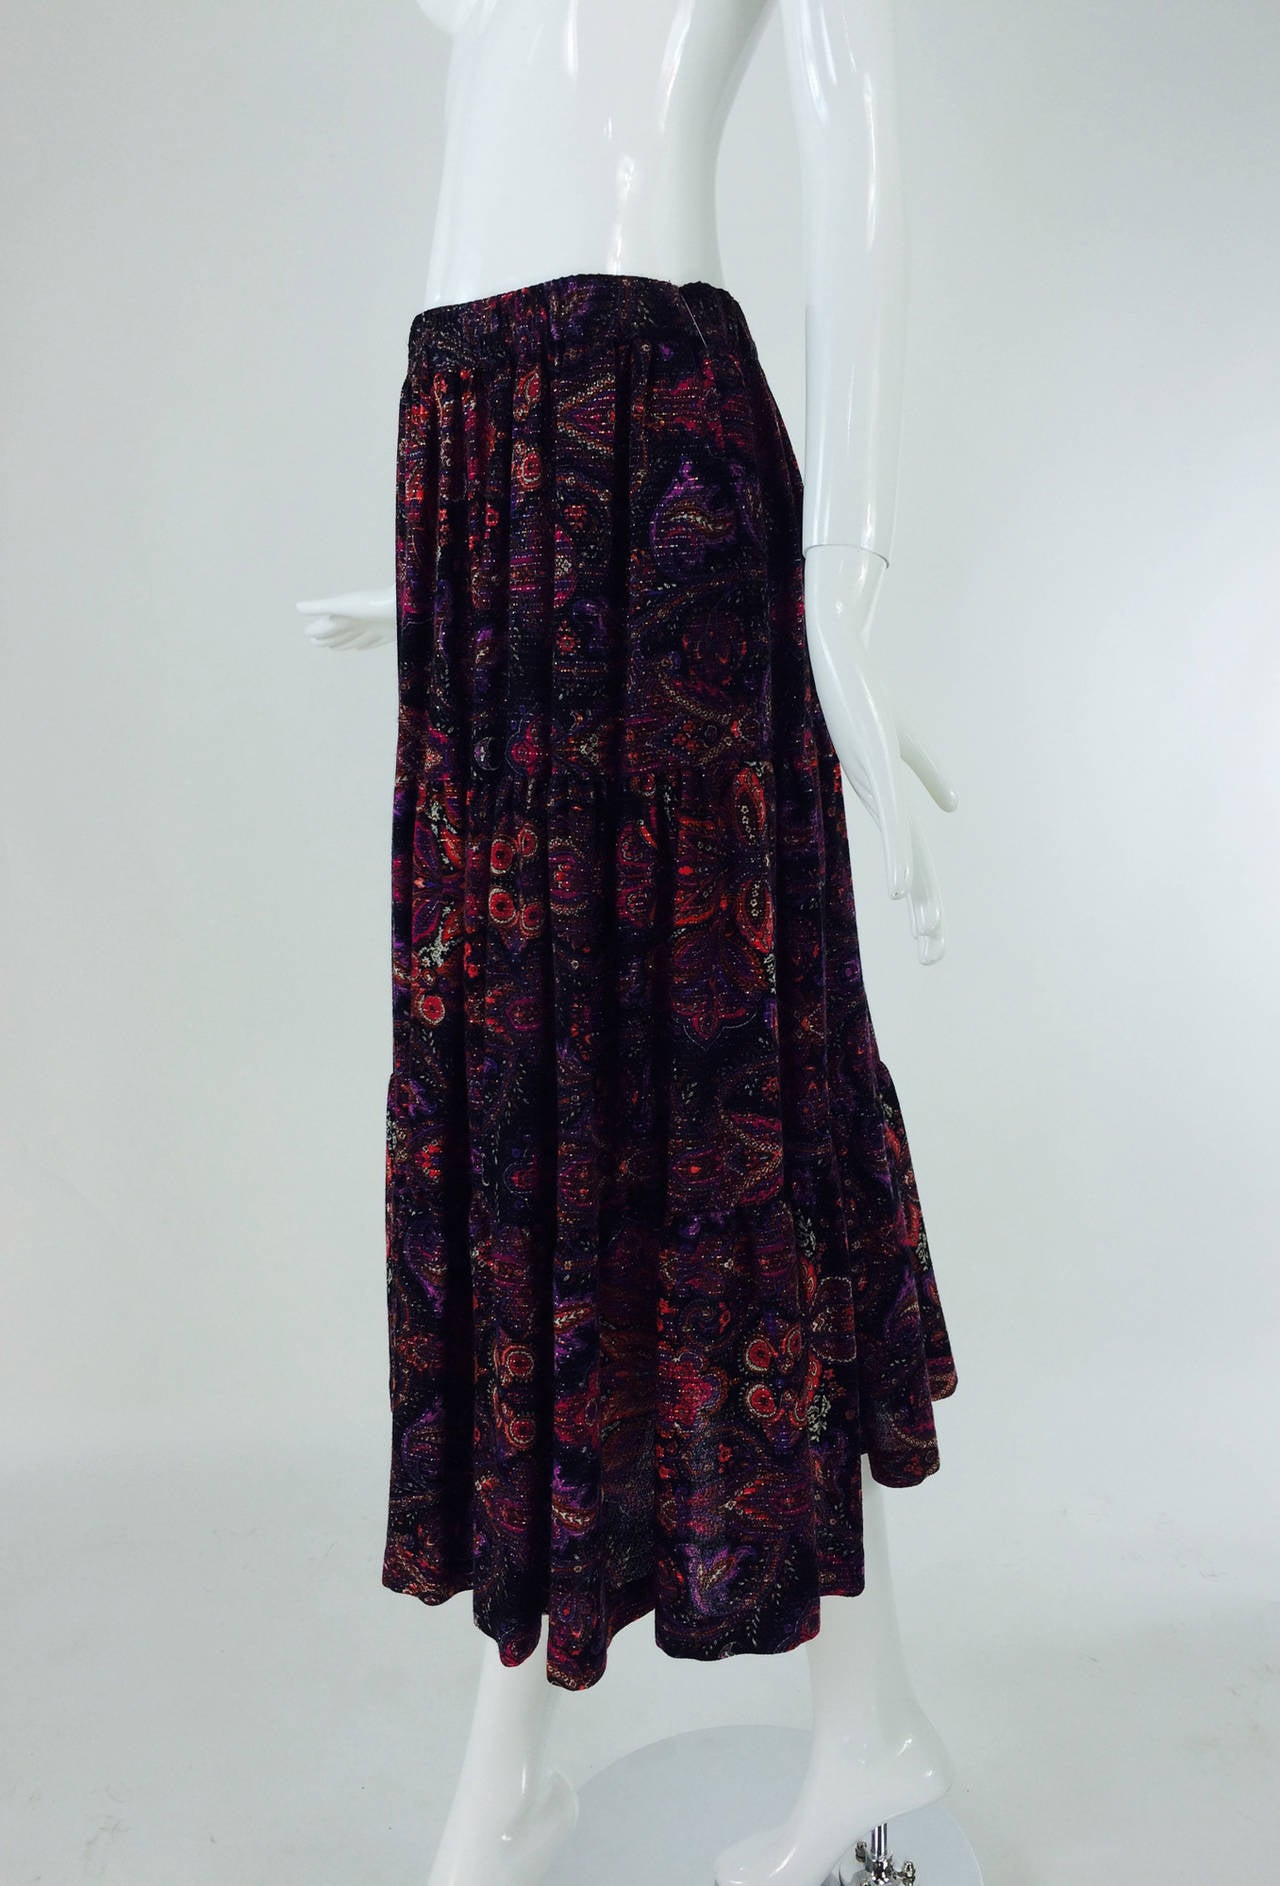 Women's Yves St Laurent YSL Rive Gauche metallic paisley tiered gypsy skirt 1970s For Sale